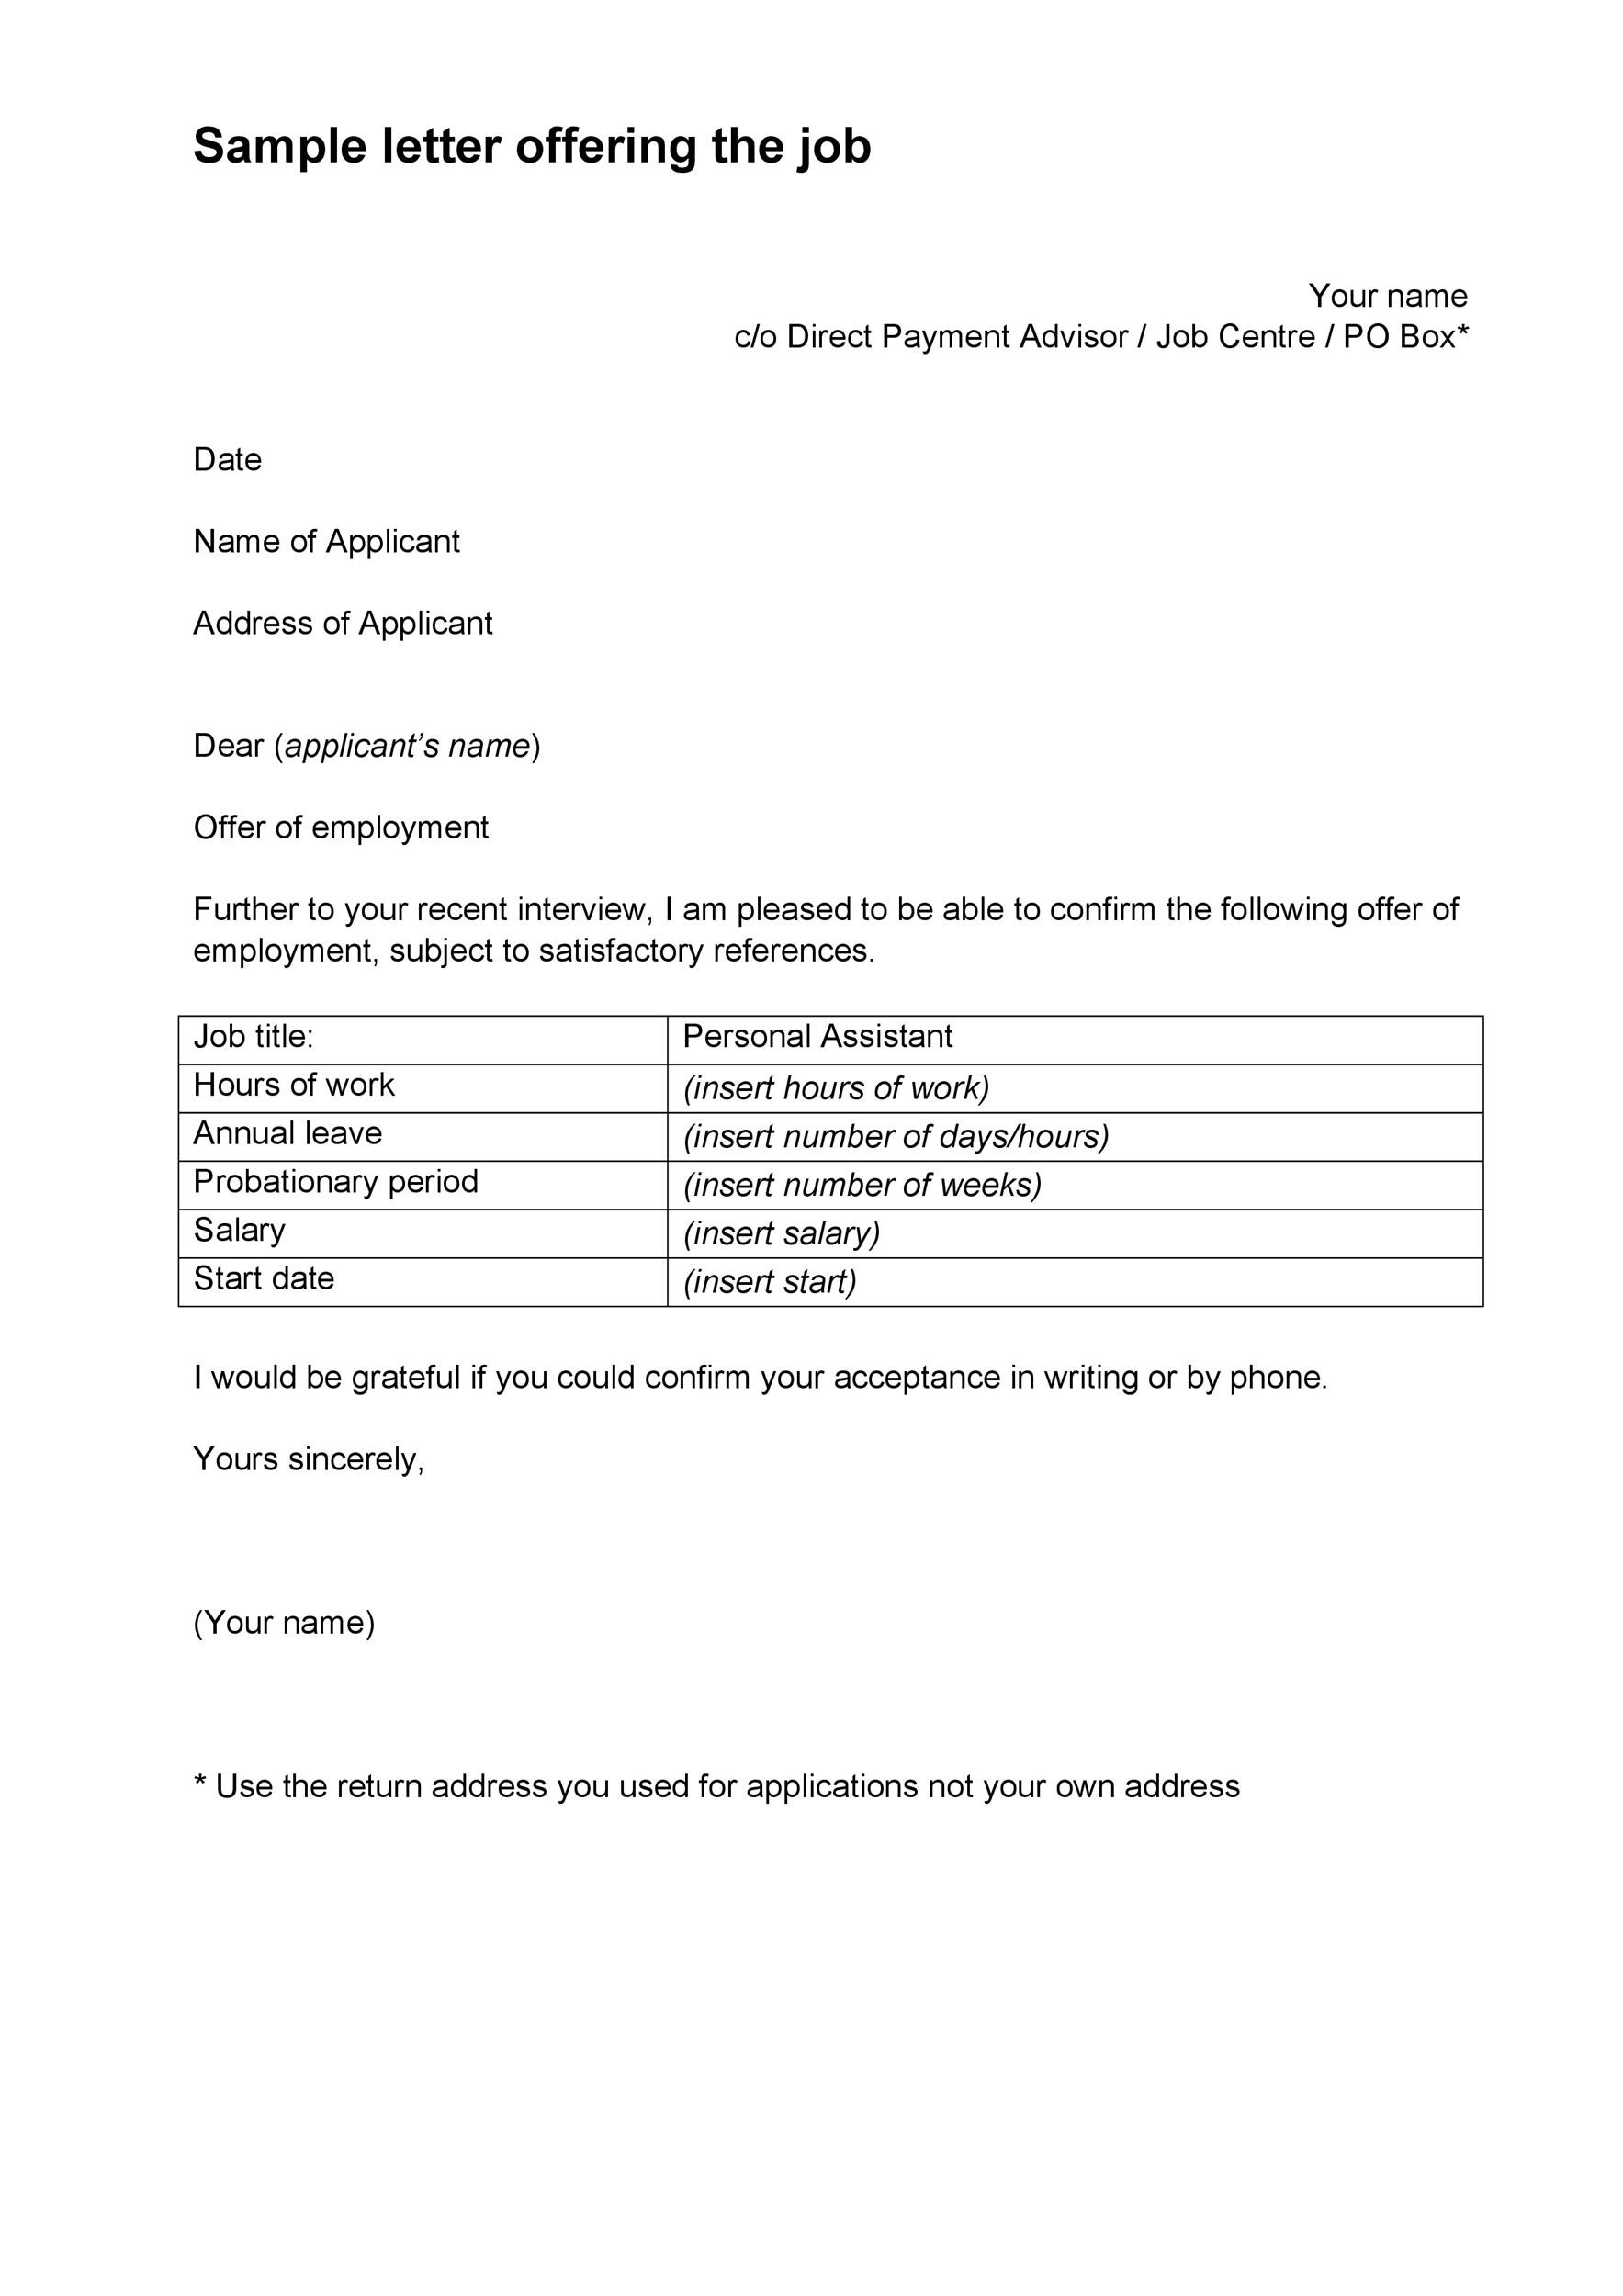 salary offer letter template   Nadi.palmex.co